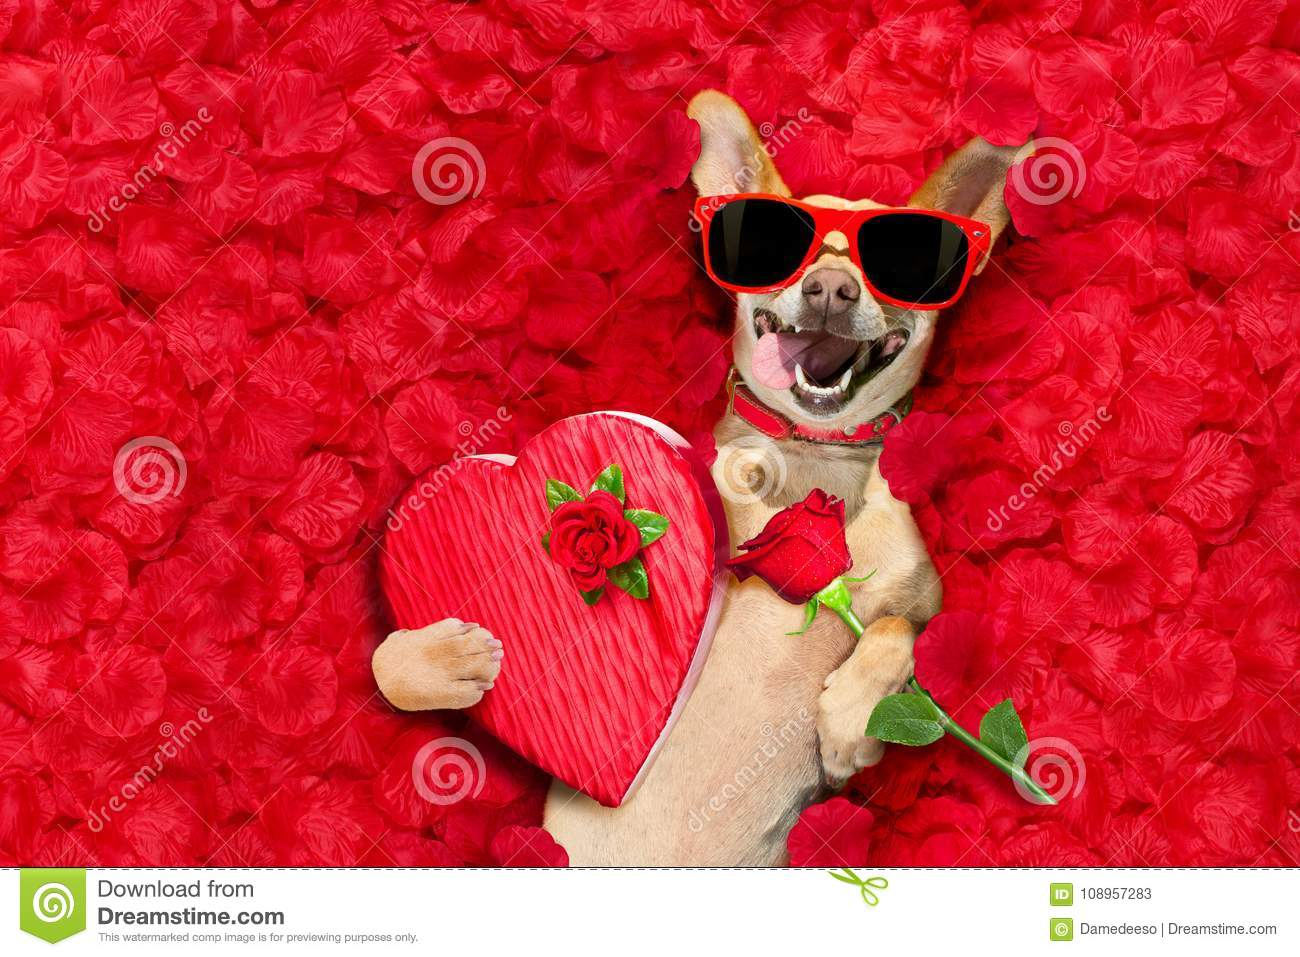 Valentines dog with rose petals